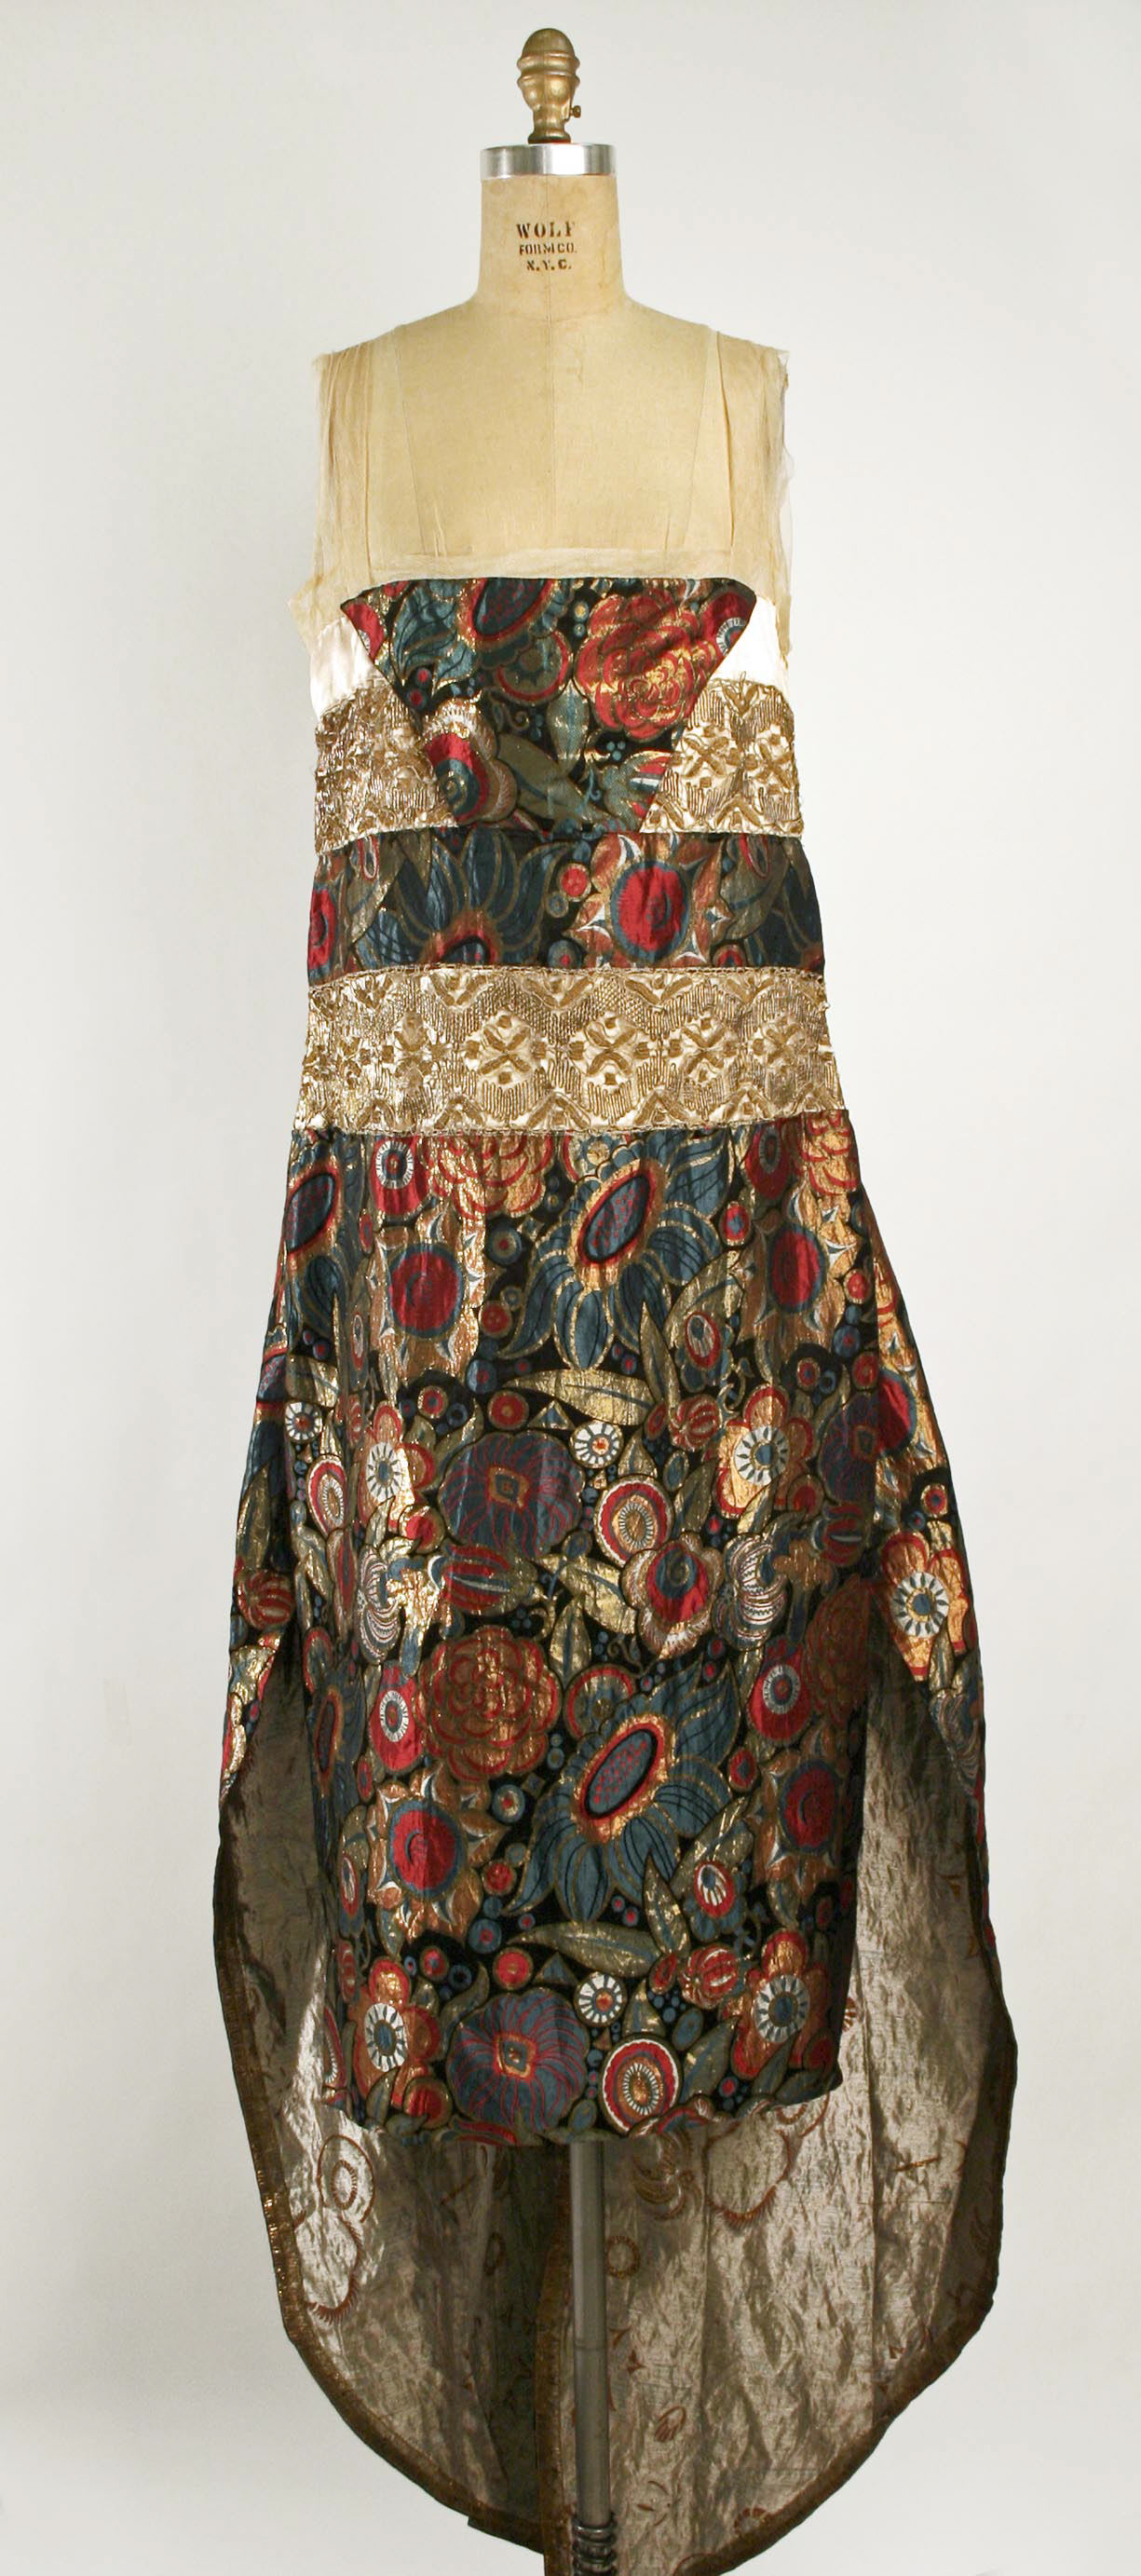 1921 Evening dress. French. Callot Soeurs. Silk, metallic thread. metmuseum